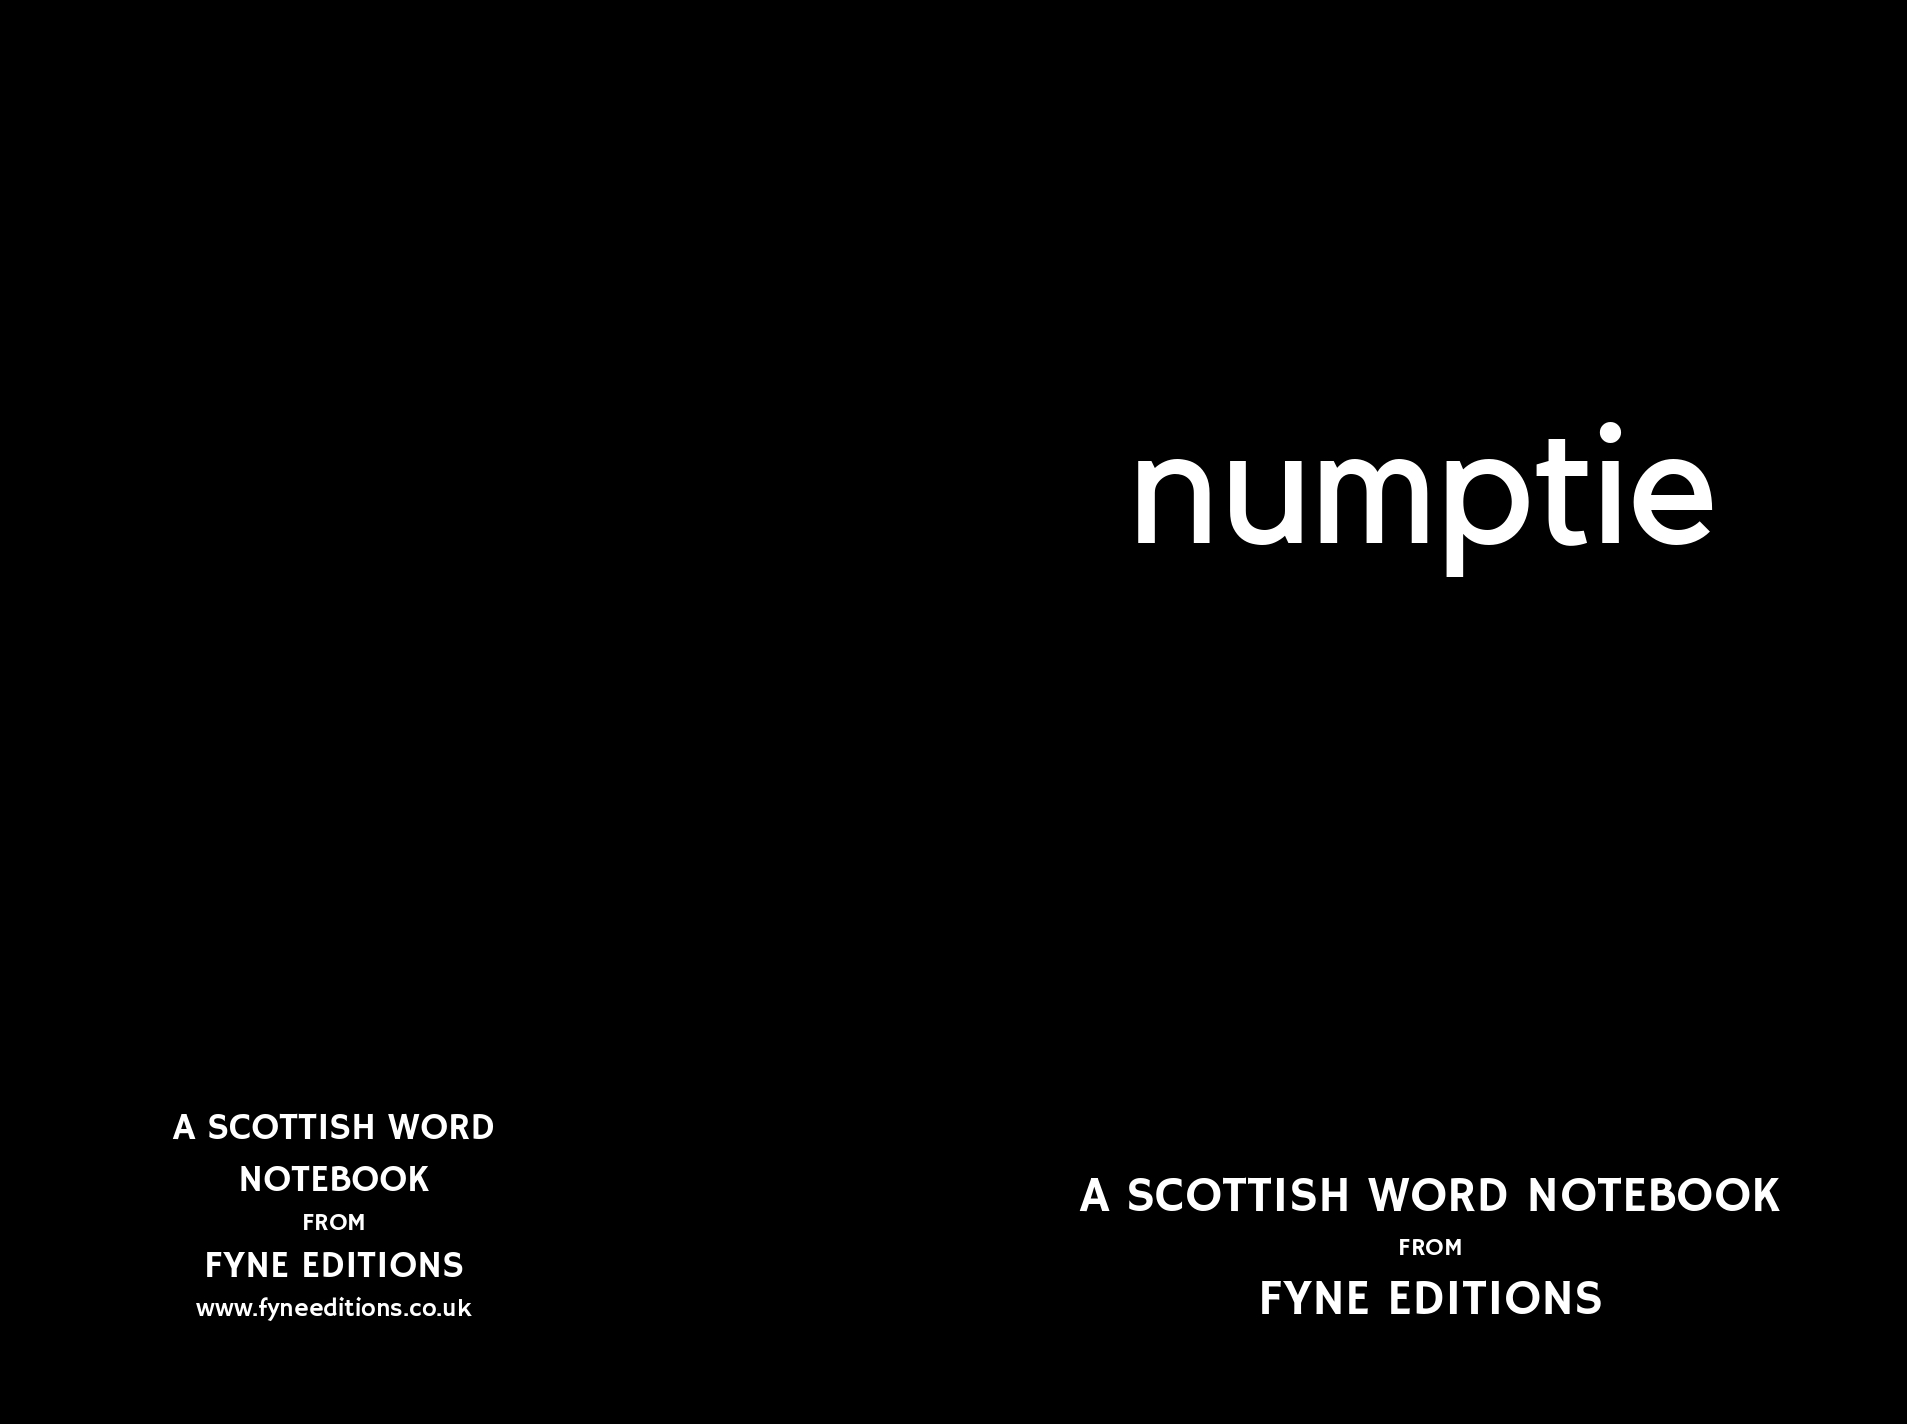 Scottish Word - Numptie